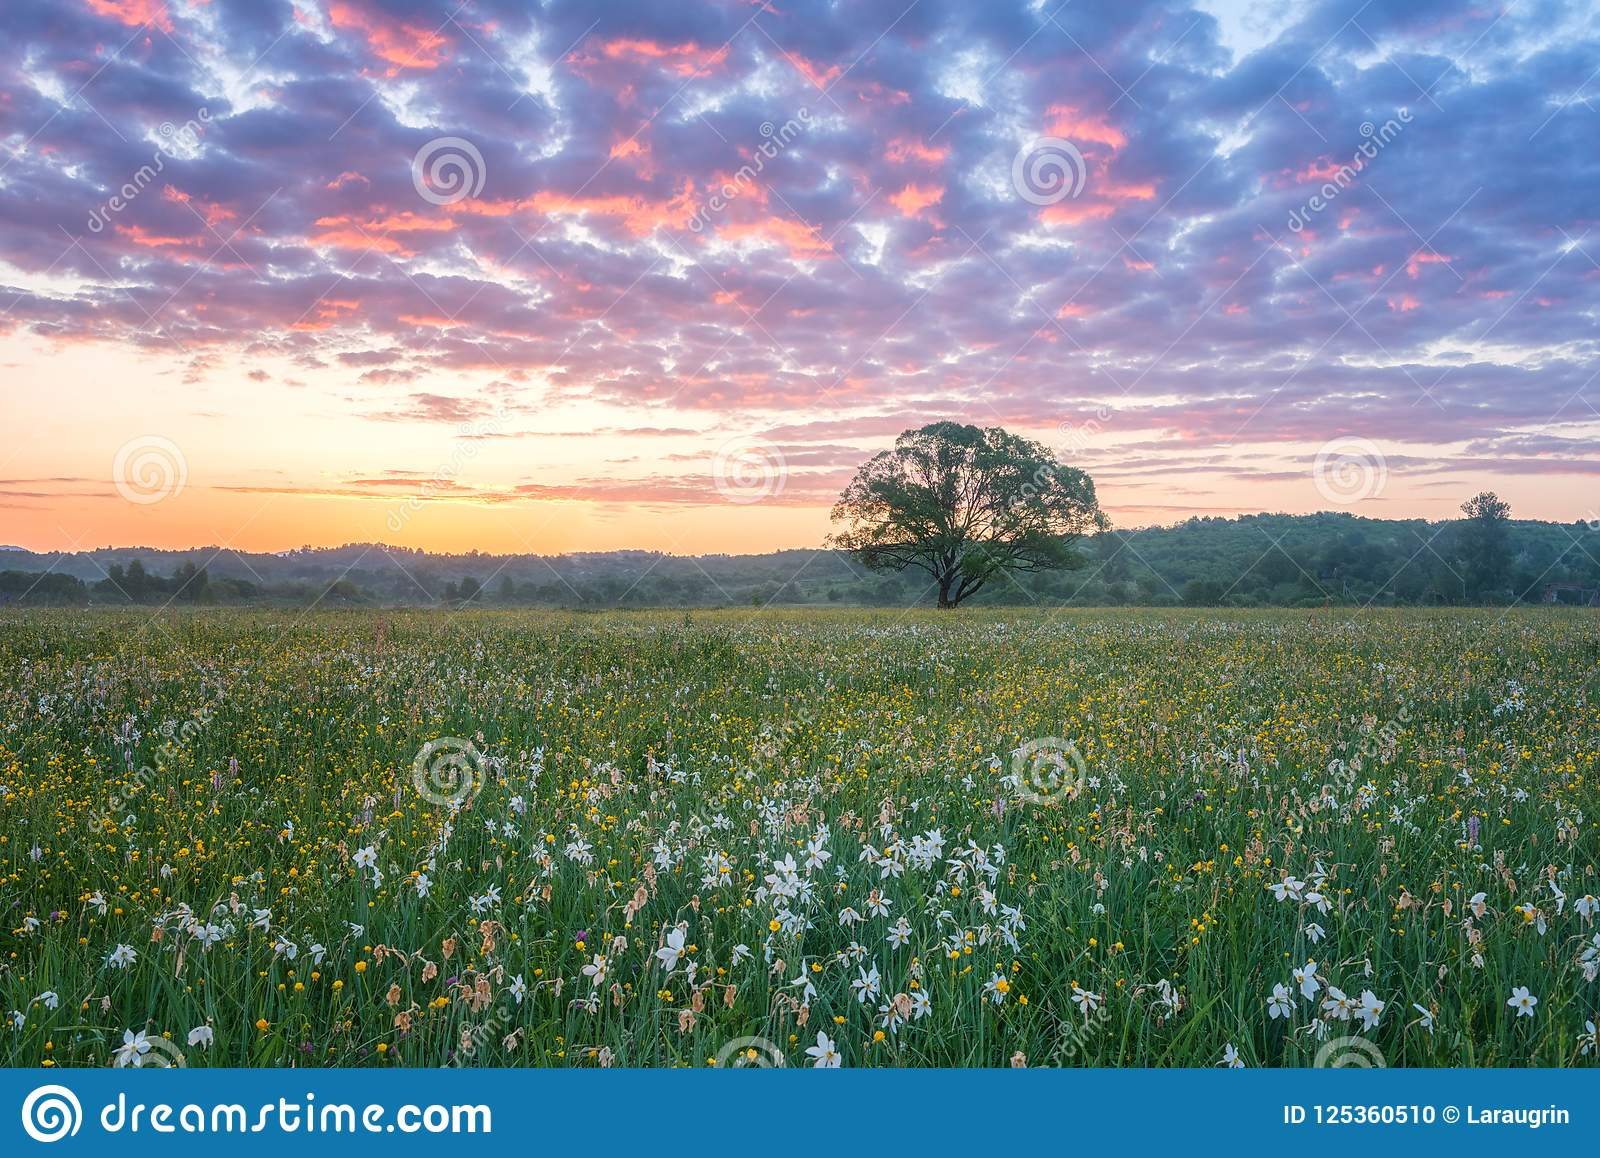 Beautiful sunrise in the flowering valley, scenic landscape with wild growing flowers and color cloudy sky